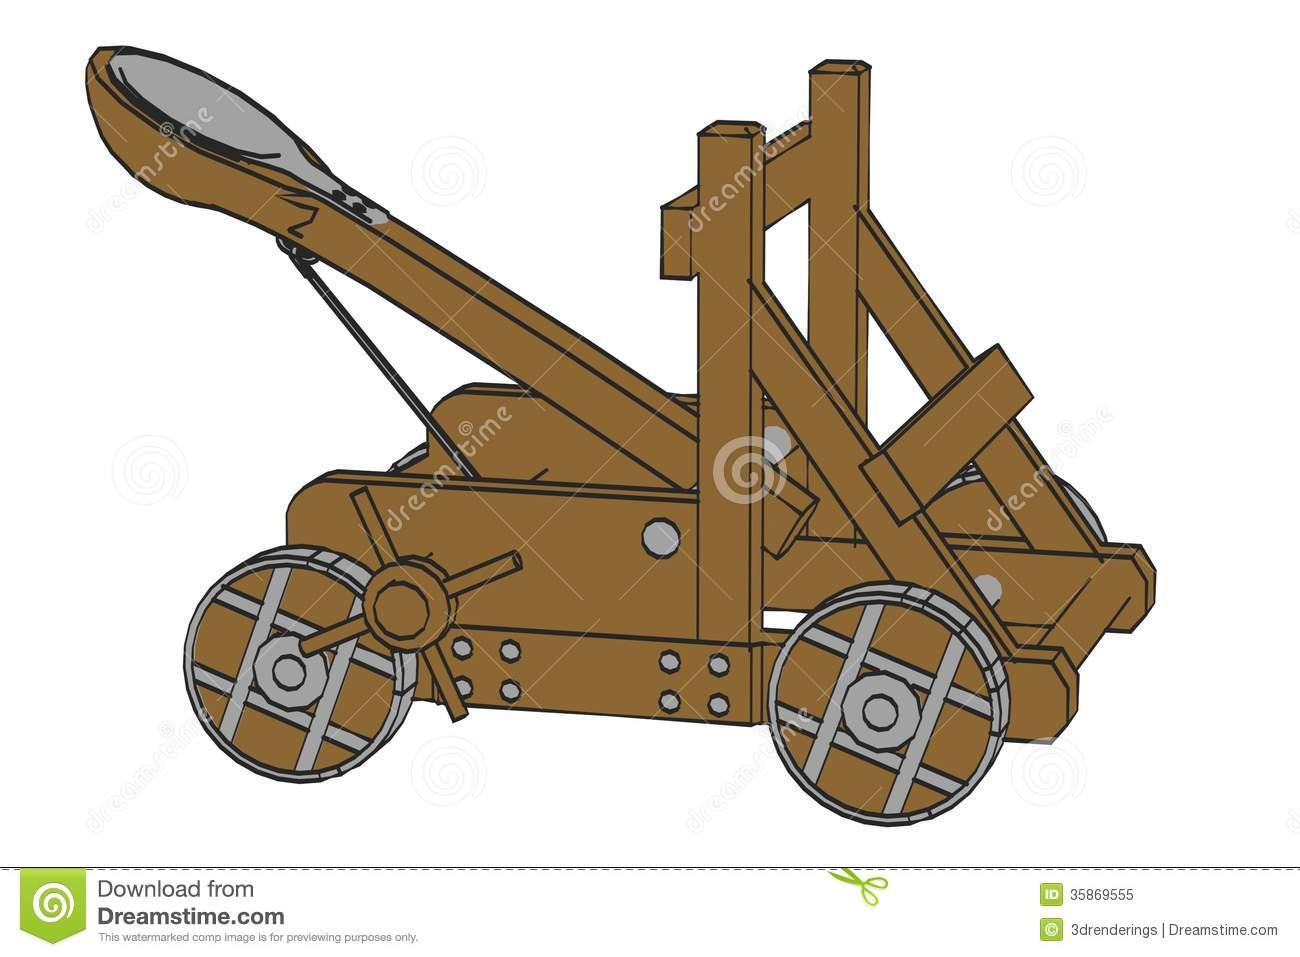 Catapult Stock Illustrations.